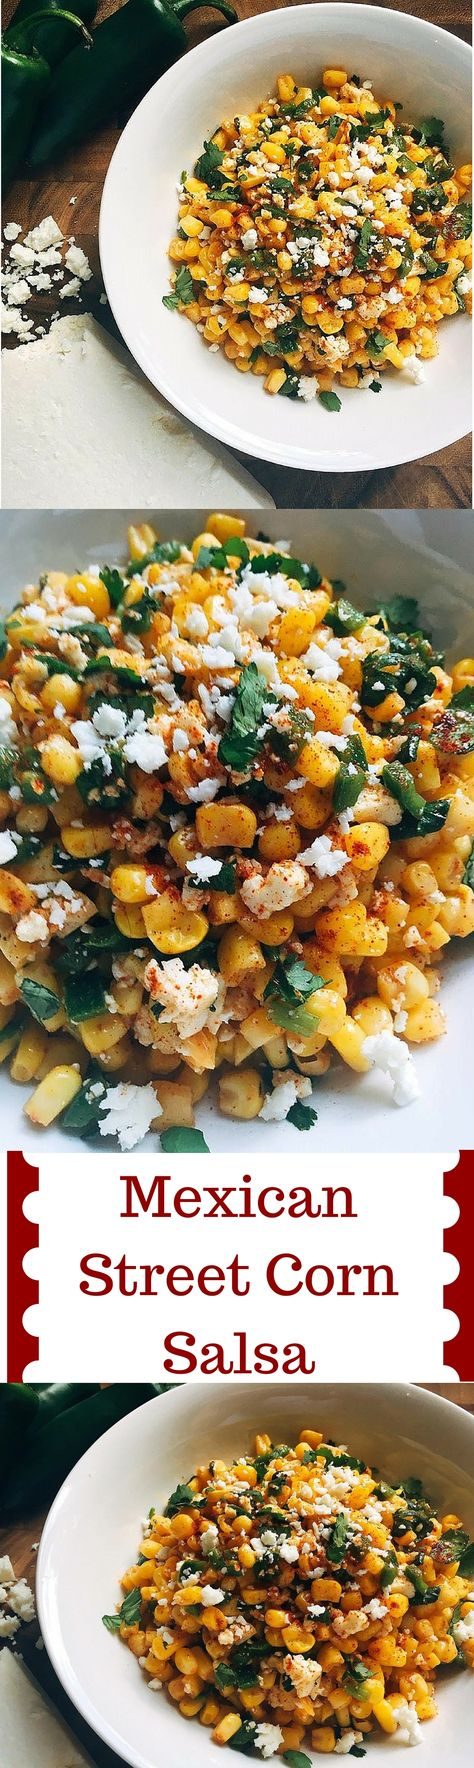 This fast and fresh salsa combines all the flavors of Mexican Street Corn into a convenient and healthy salsa! Takes just 5 minutes to make and also tastes great on tacos, enchiladas, and more!